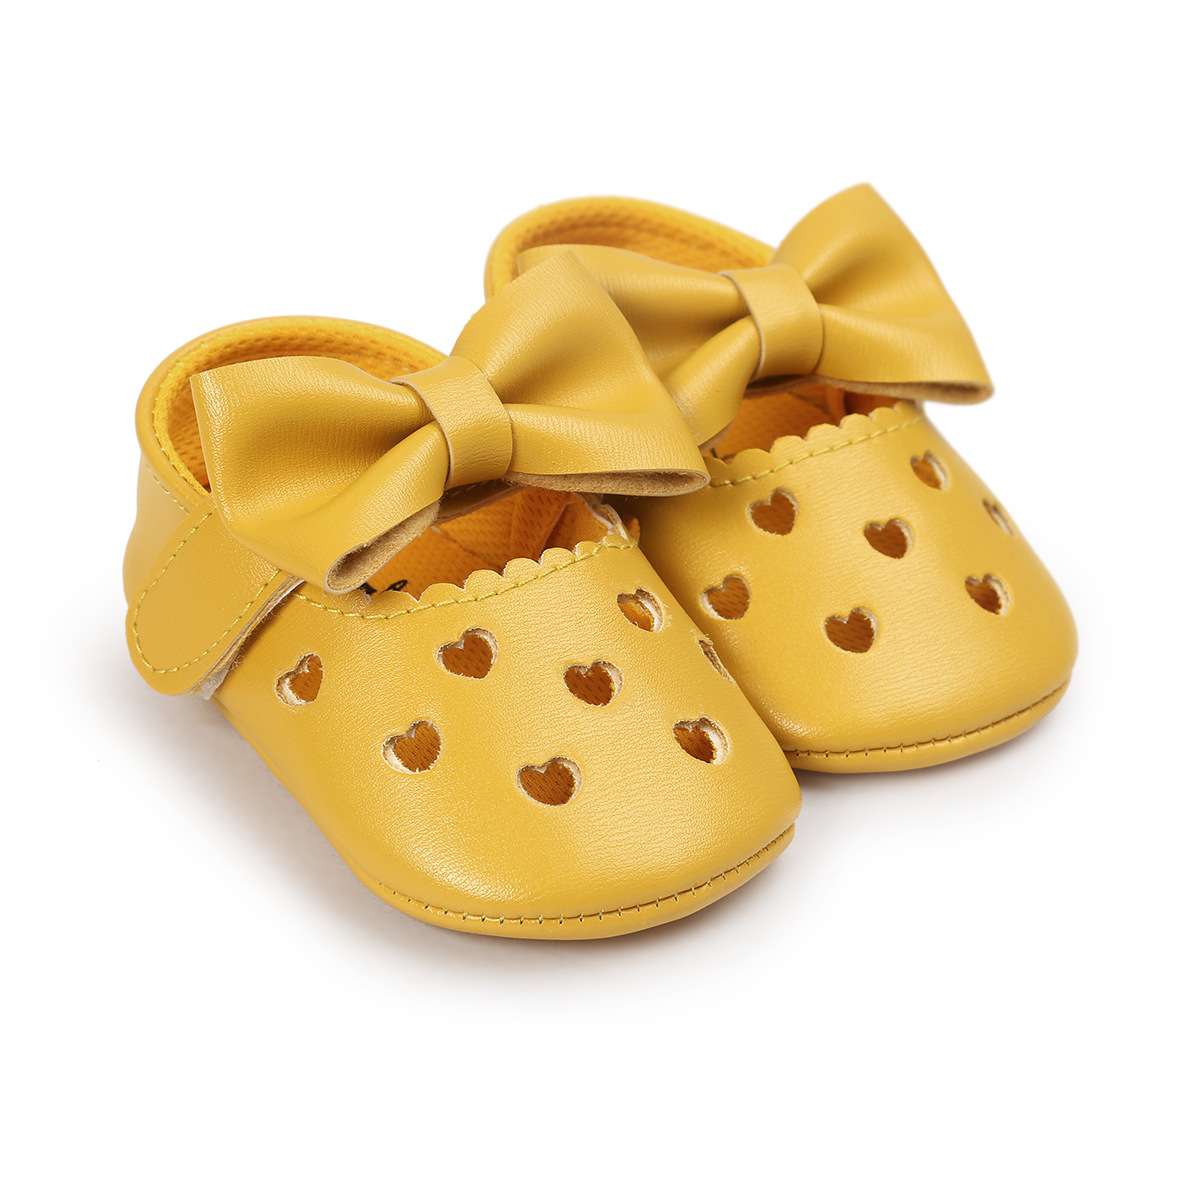 Infant newborn yellow baby crib shoes girl princess lovely bowknot pu soft sole anti-slip breathable first walker toddler moccasins